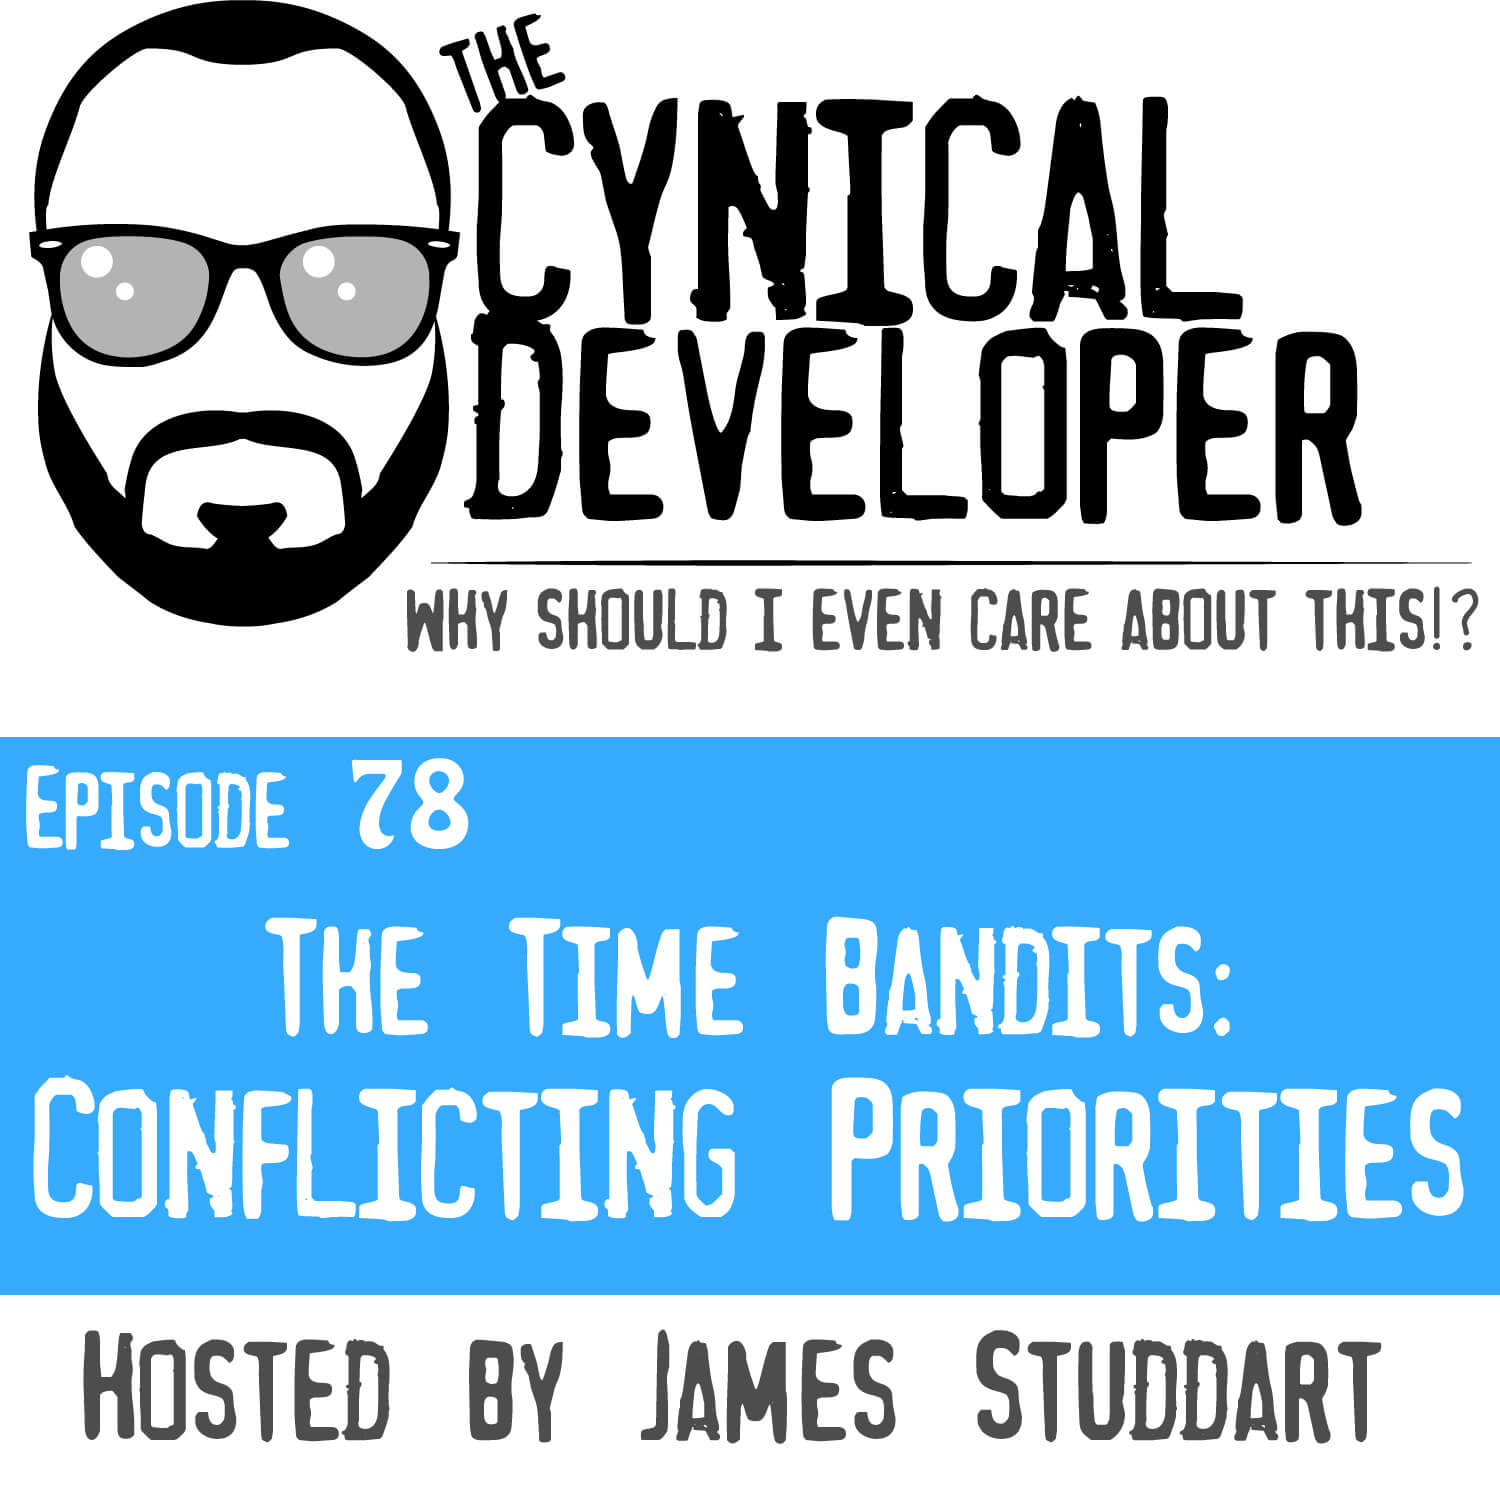 Episode 78 - Conflicting Priorities